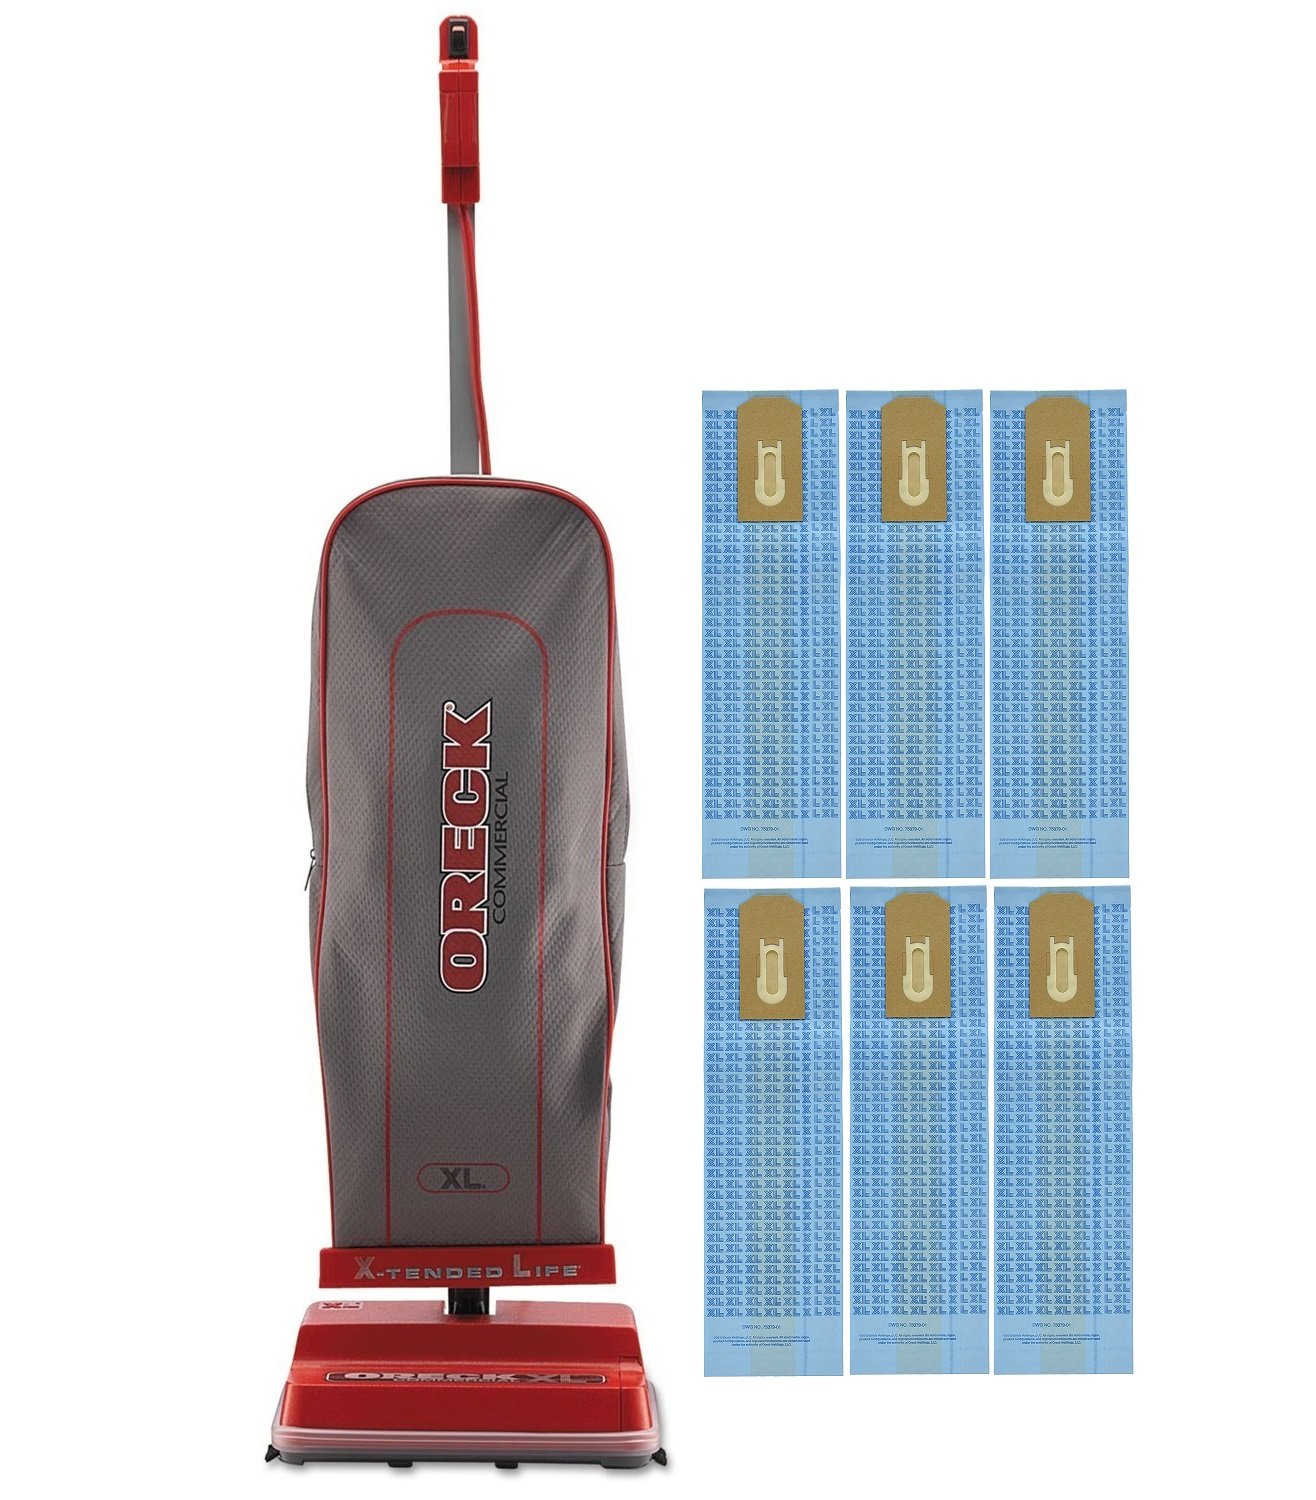 Oreck Commercial U2000RB-1 Commercial 8 Pound Upright Vacuum with EnduroLife with 6 Oreck Bags by Oreck